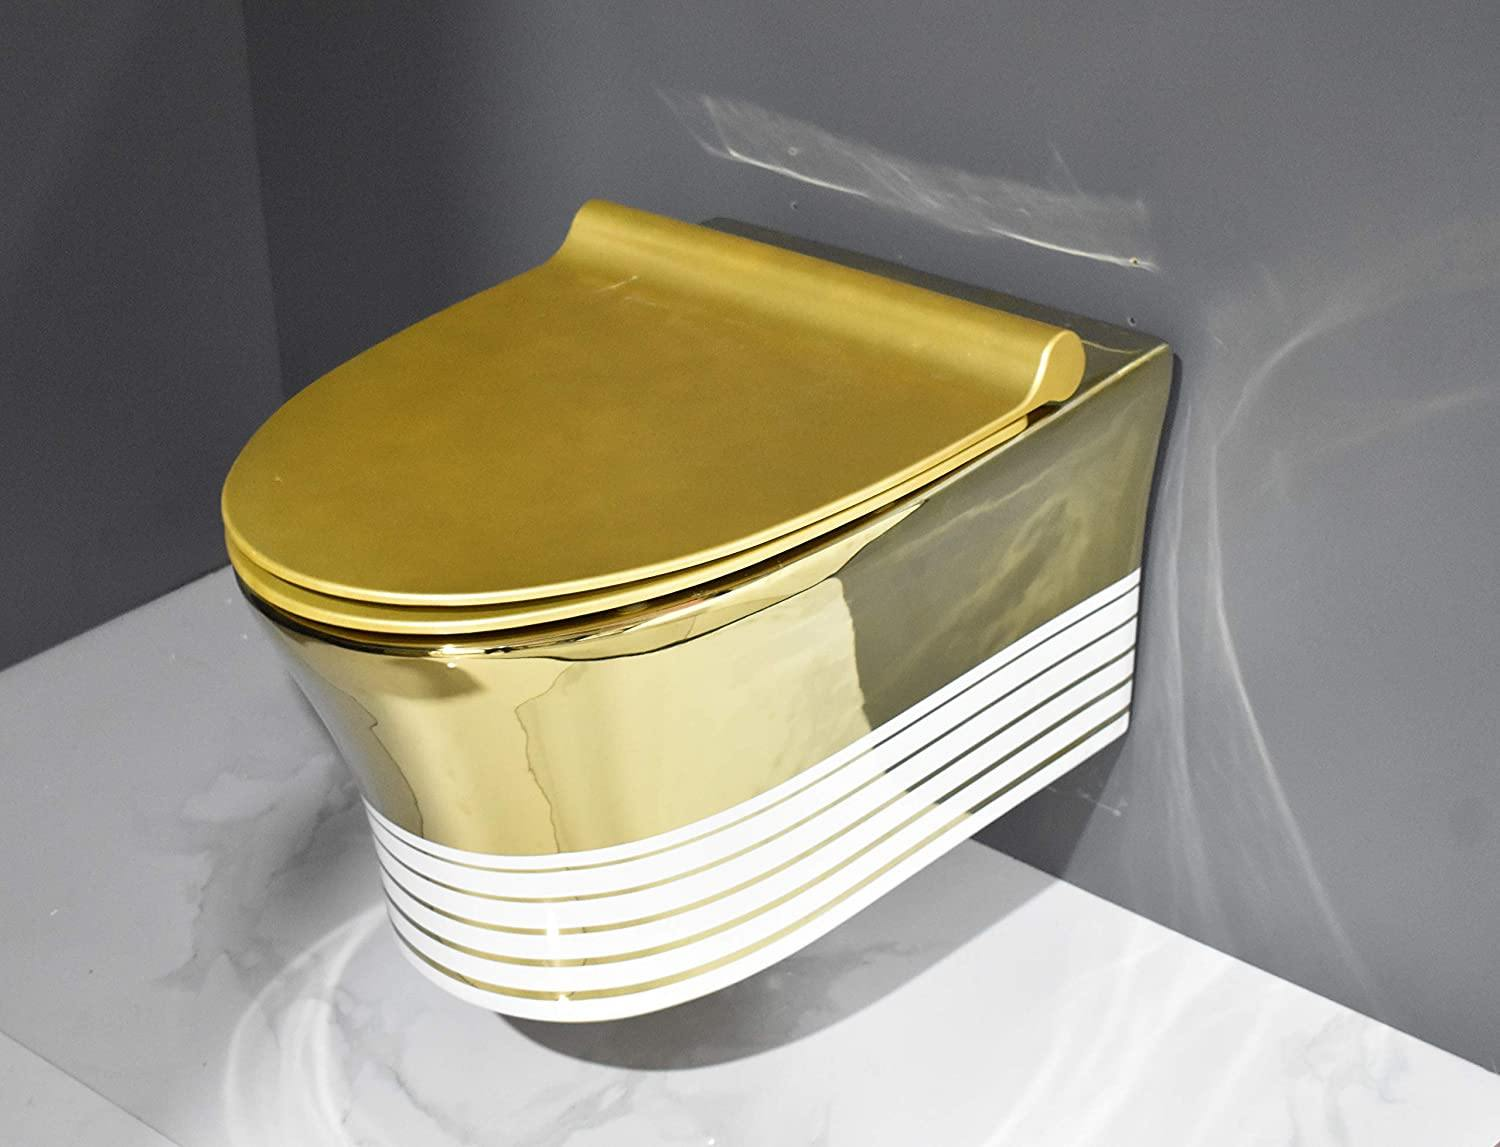 Wall Hung Toilet Bowl Bathroom Oval Toilet Bowl Wall Mount Toilet With Rimless Flush 56 x 38 x 36 CM Gold White Color Stripes